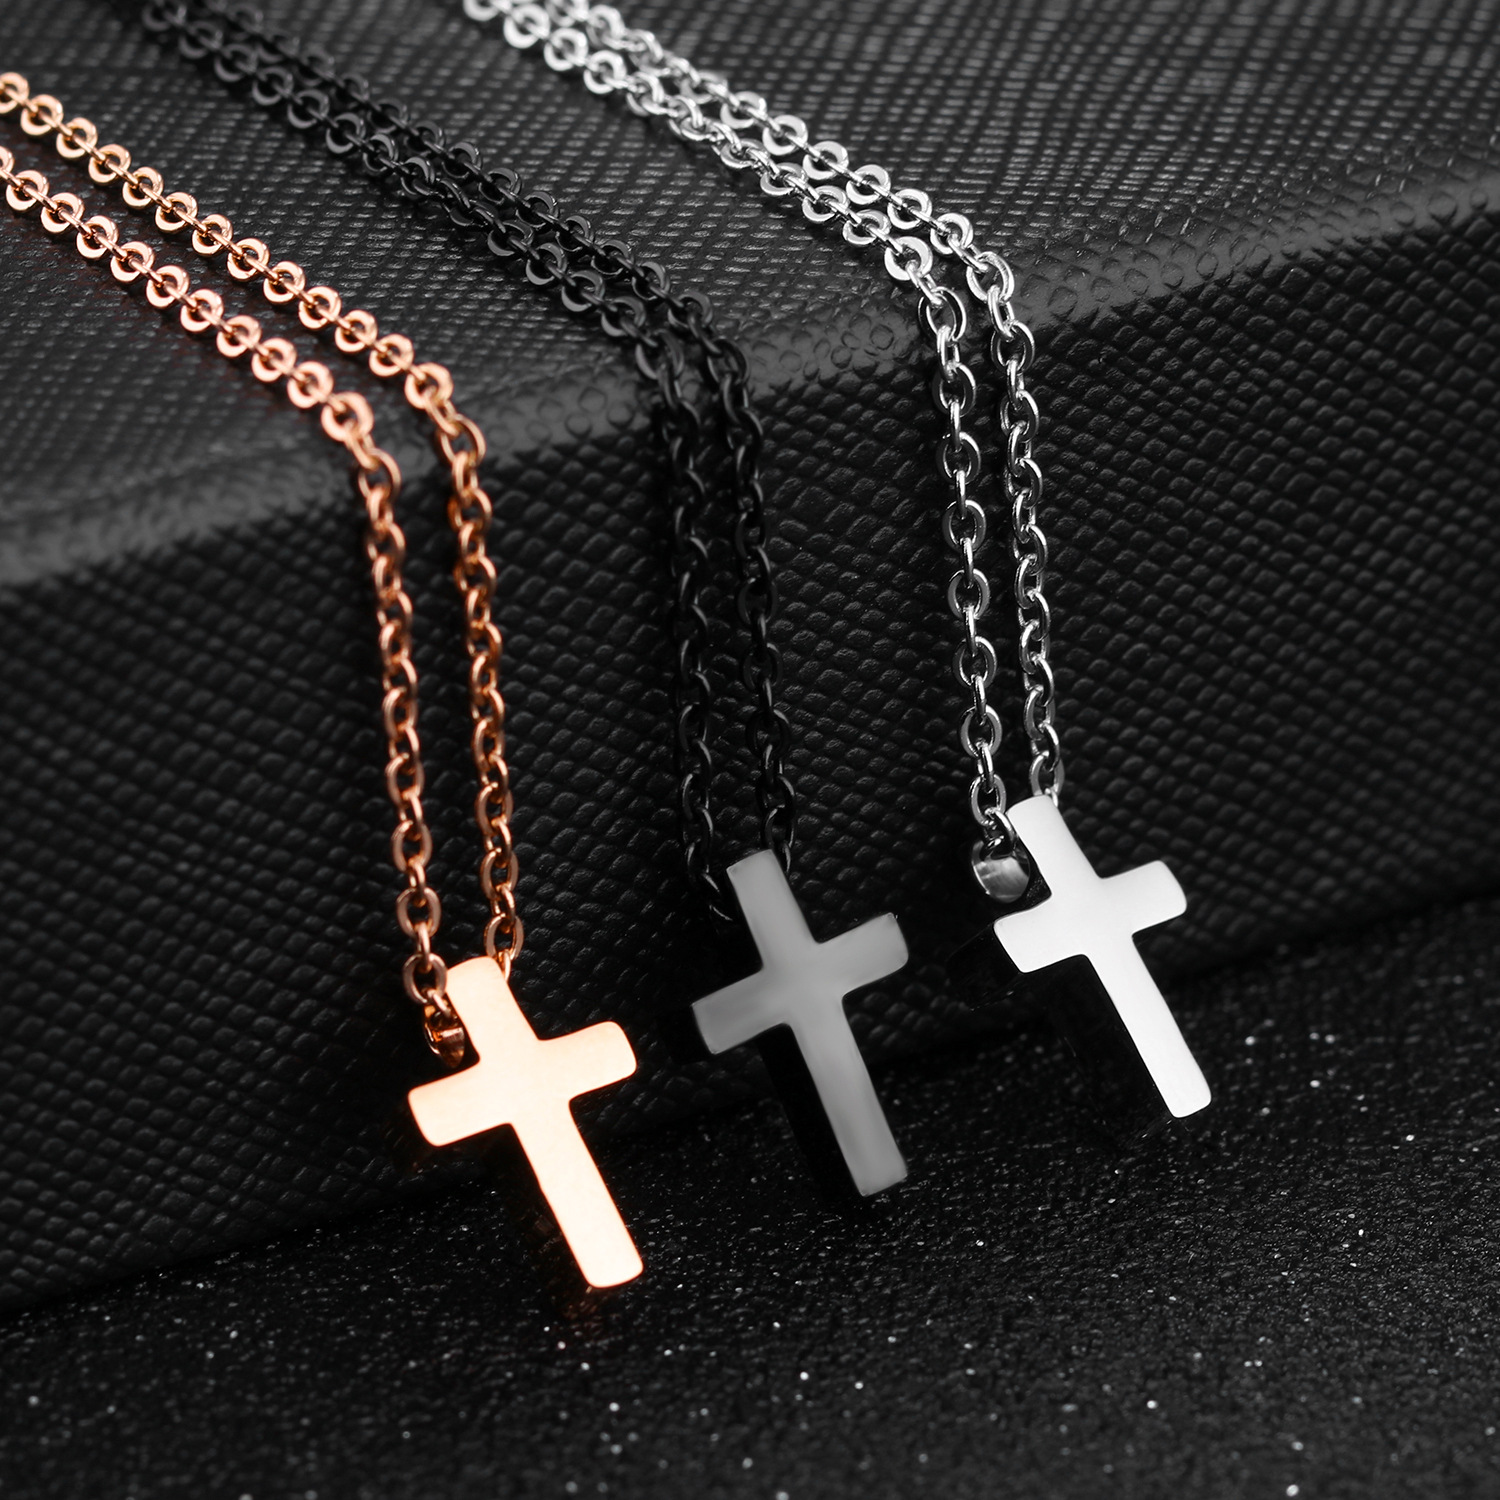 Hot Saling Fashion Jewelry Simple Design Stainless Steel Mini Cross Pendant Chain Necklace For Women